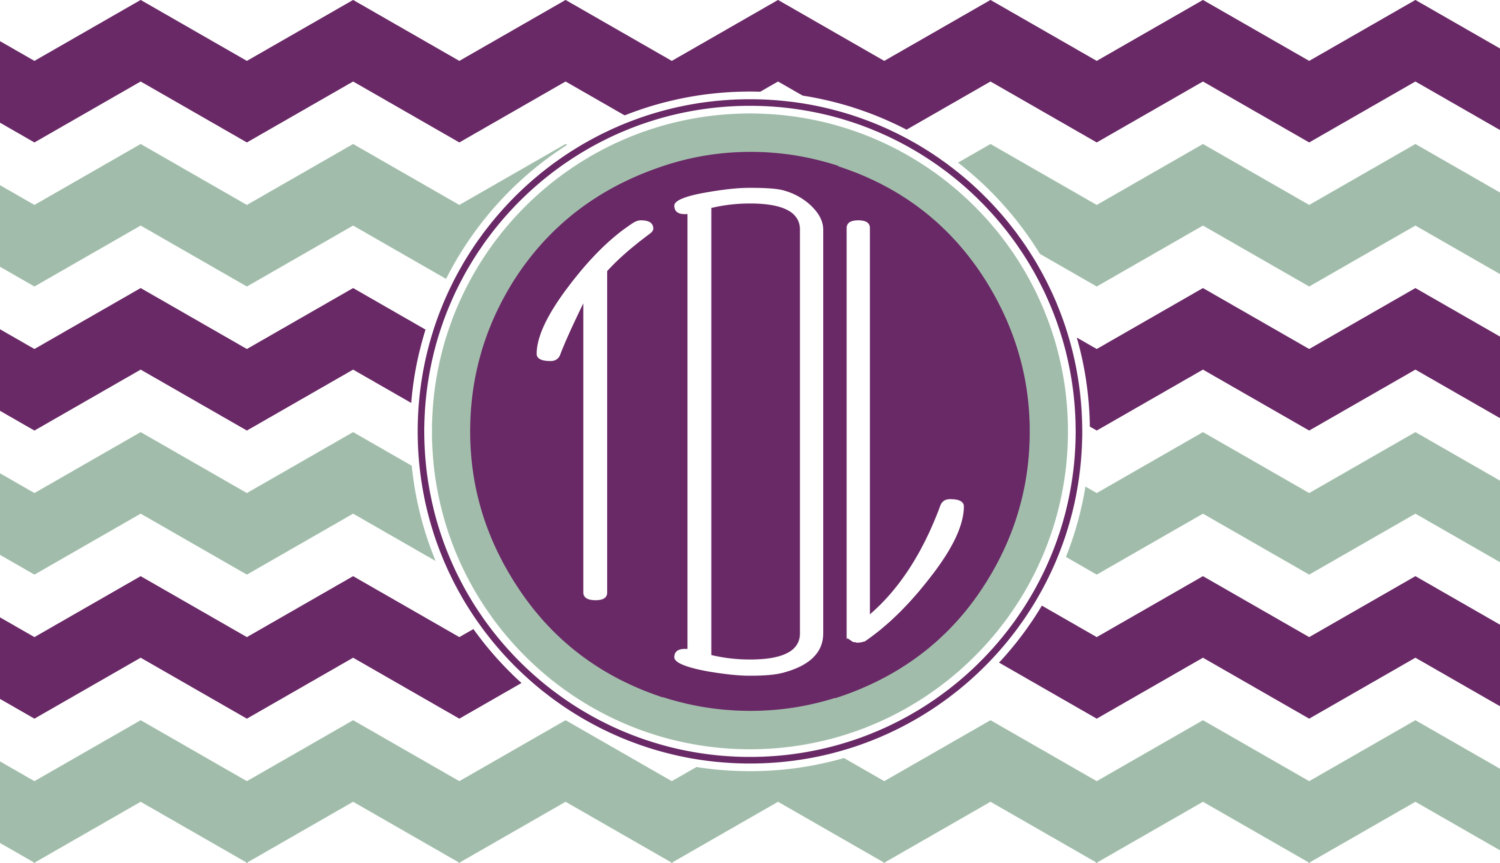 Items similar to Monogrammed Chevron Computer Wallpaper on Etsy 1500x863